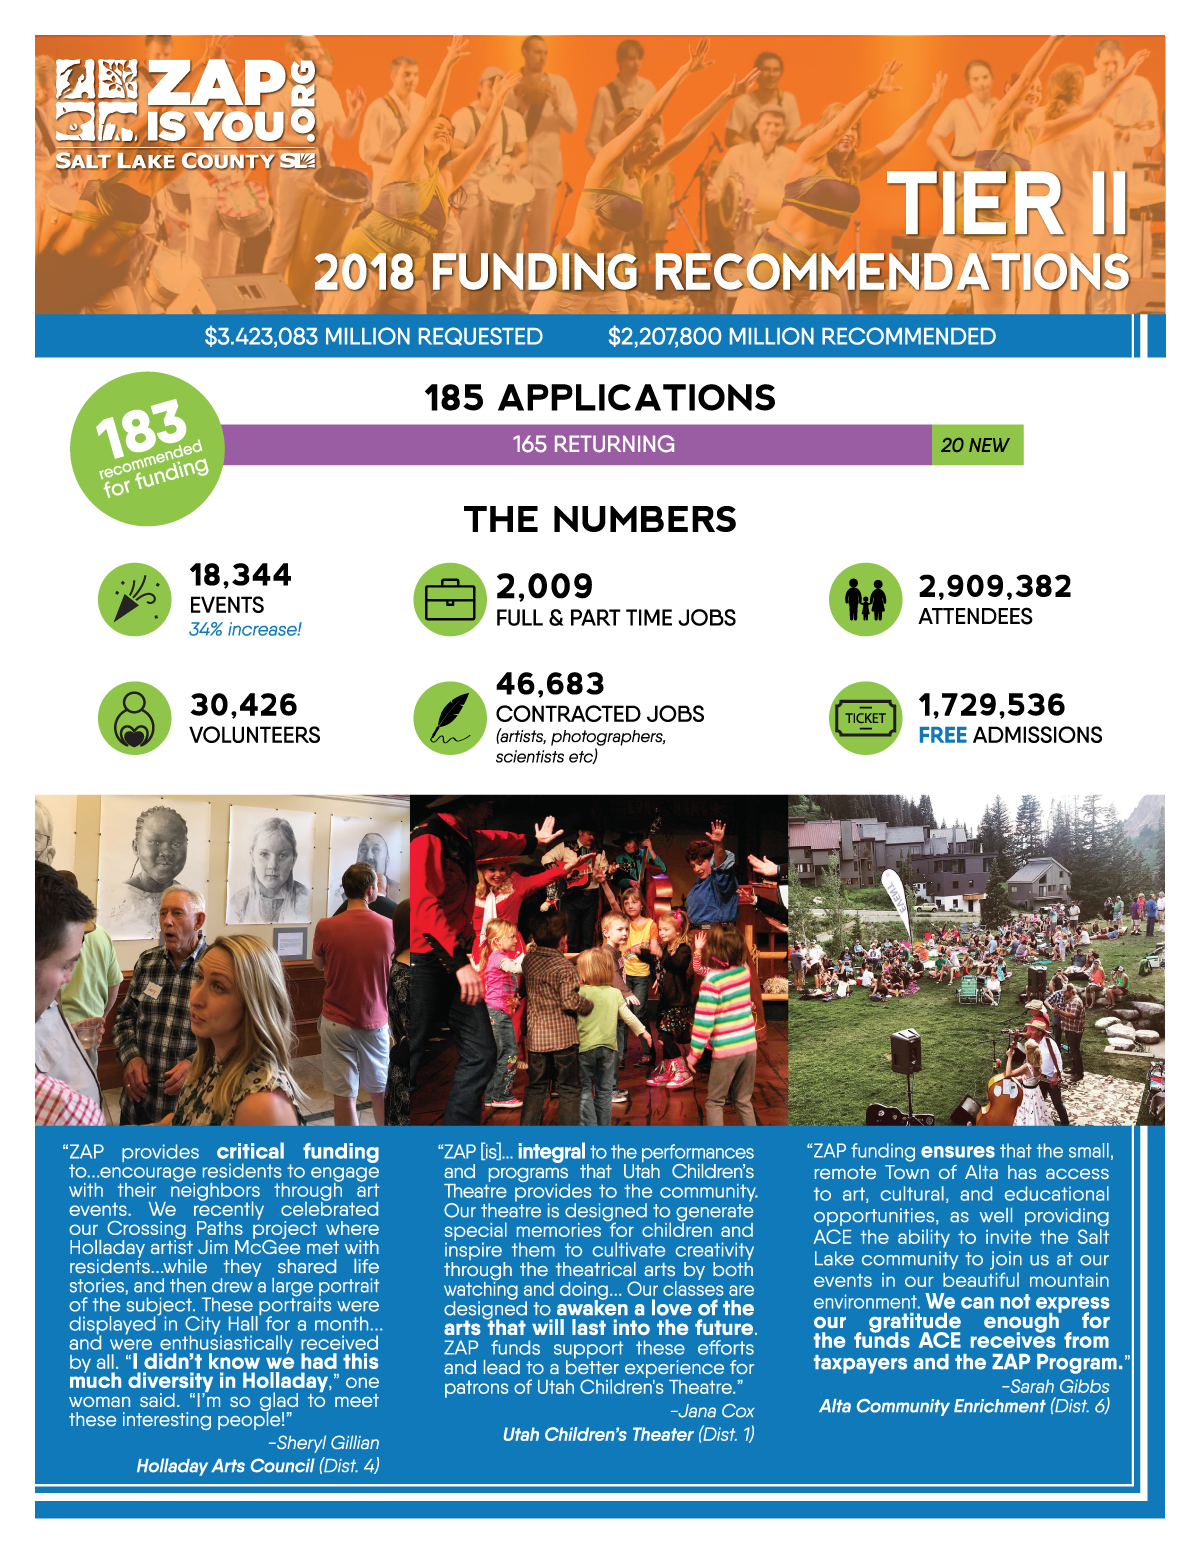 Tier II Funding At A Glance